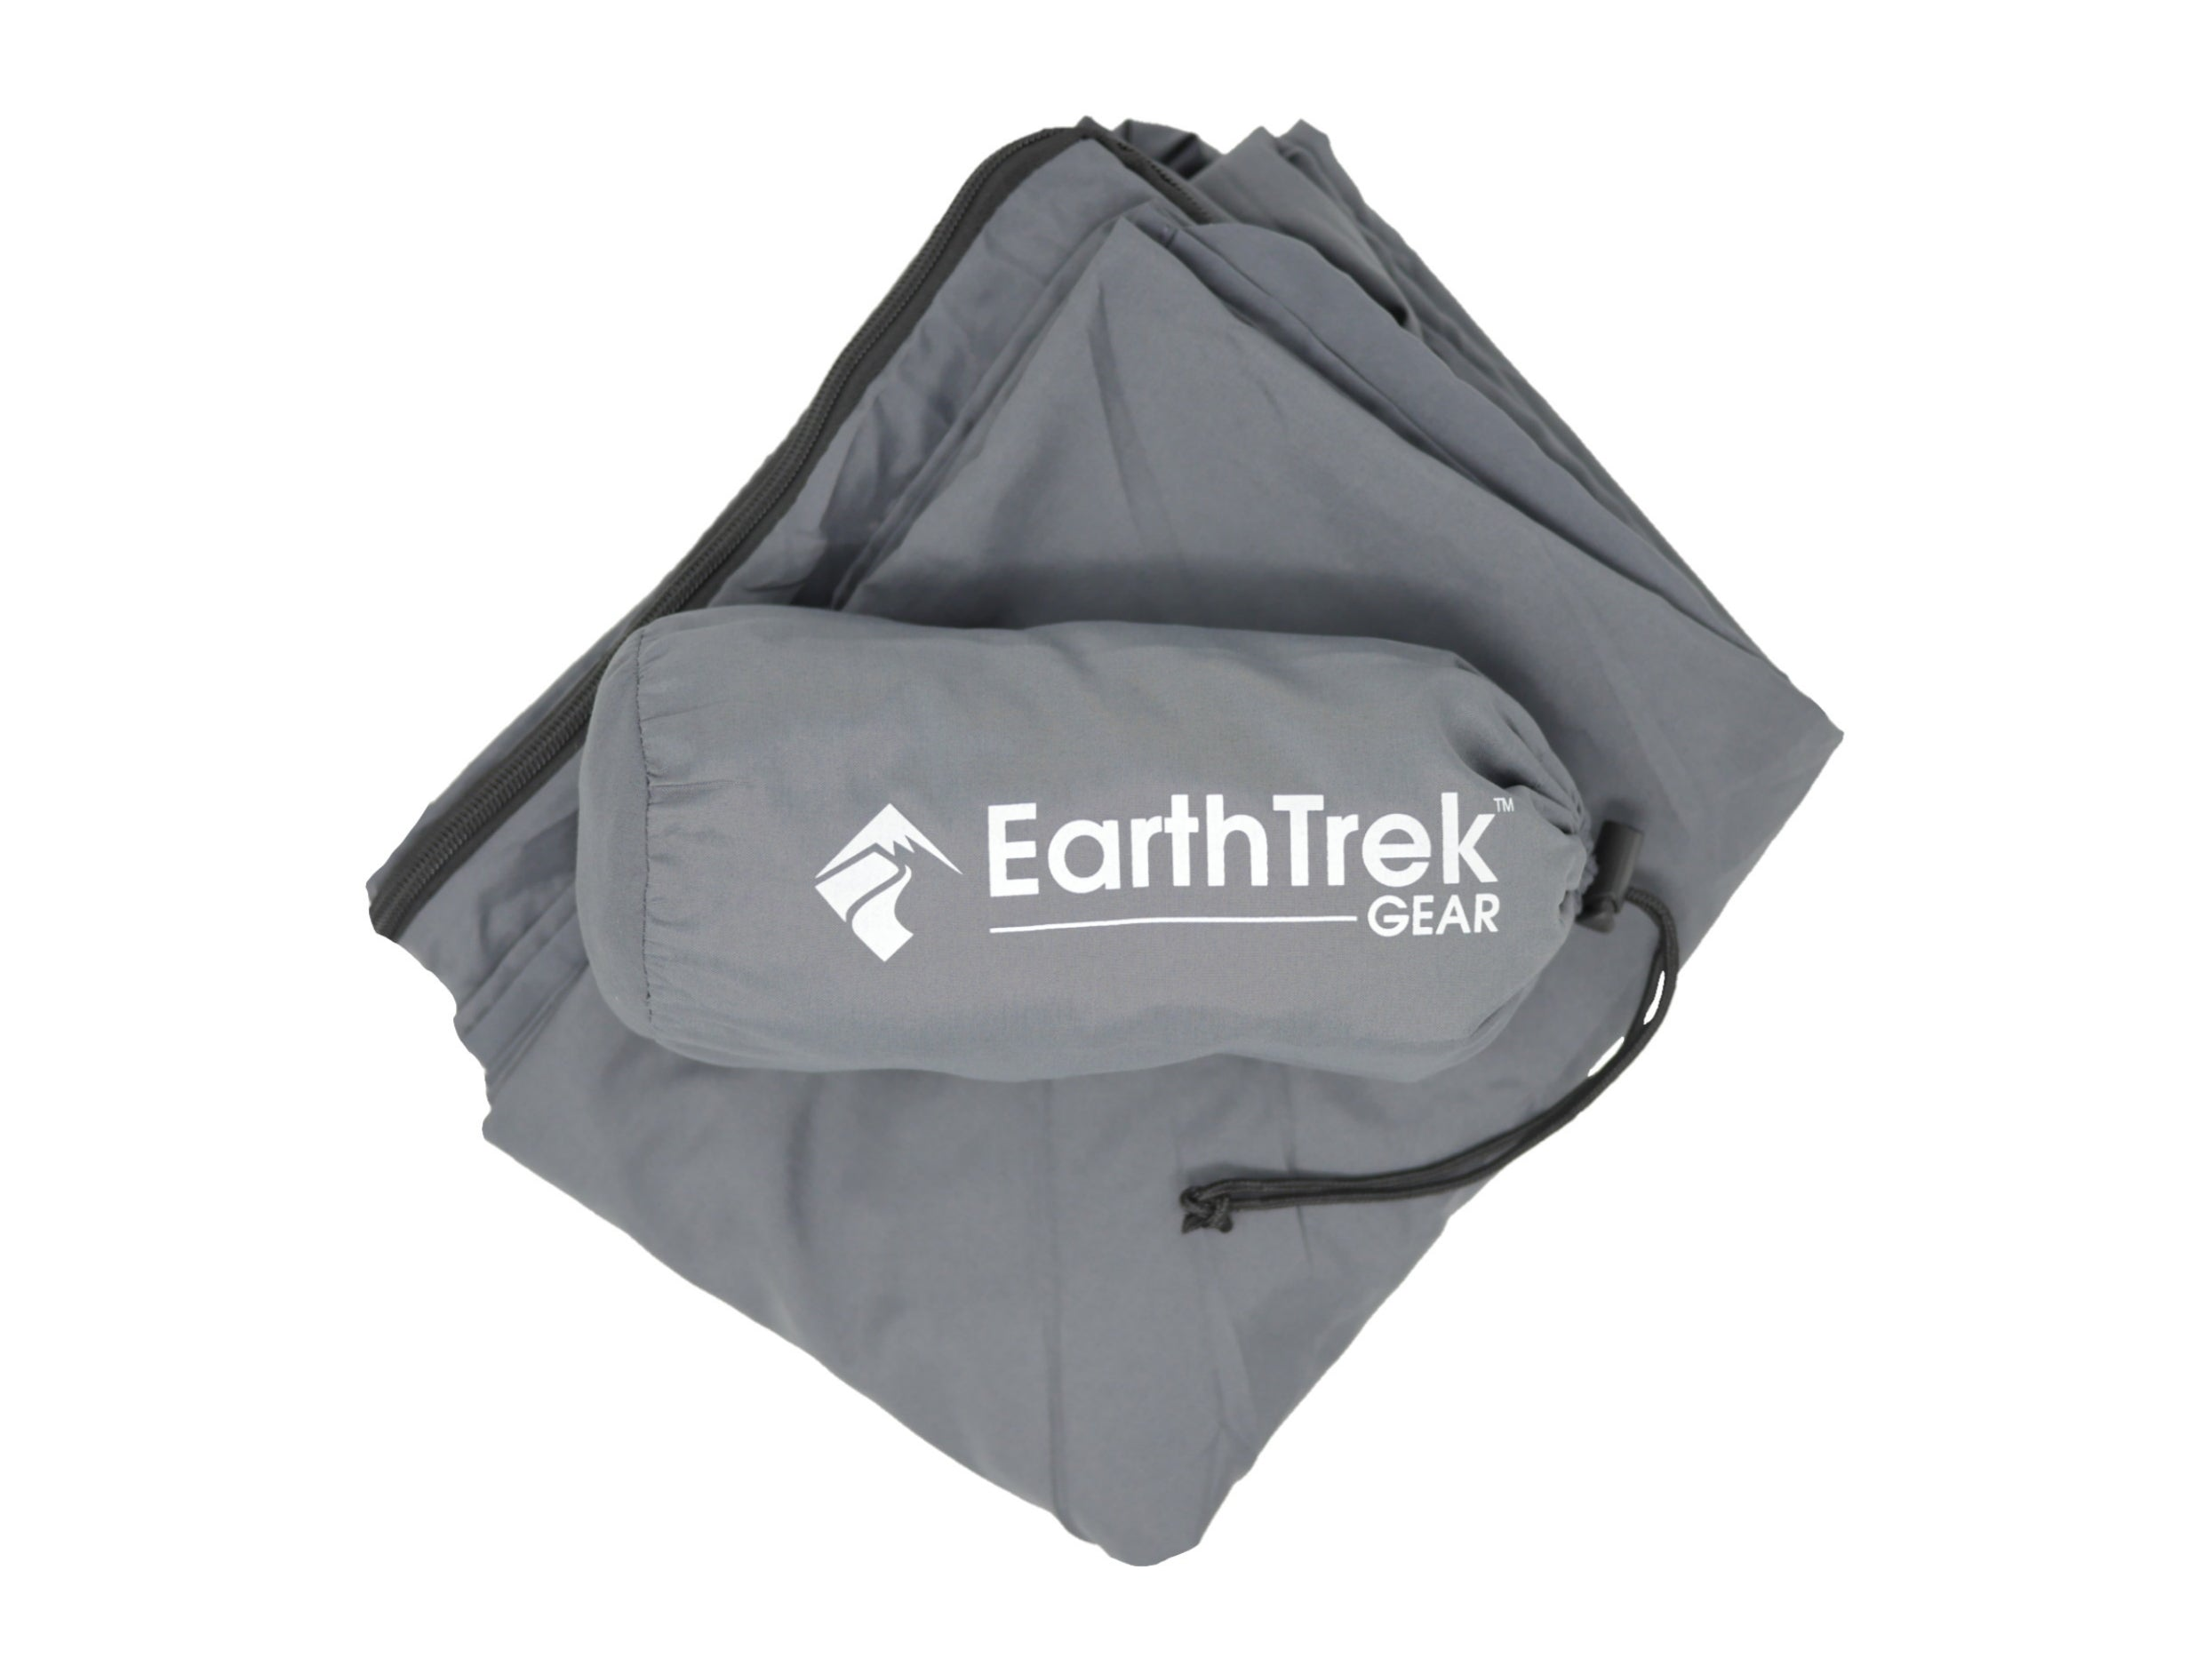 extra-large-comfy-travel-sleepingbag-liner-top-view